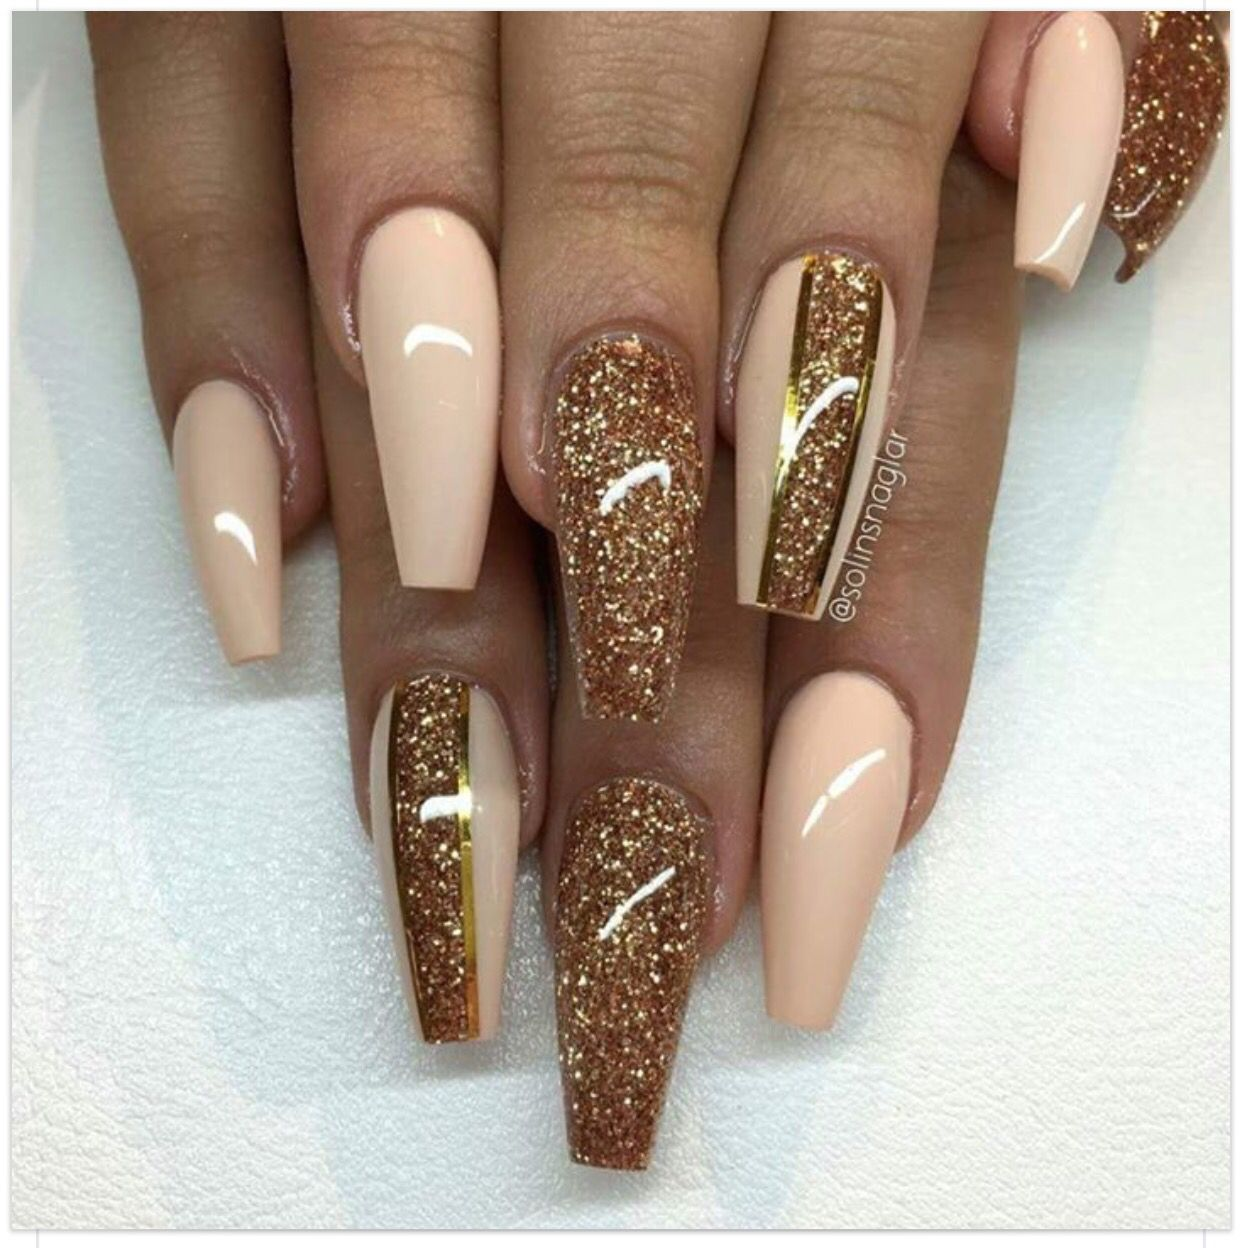 Pin by αℓεxιs chαcon❥ on Nails | Pinterest | Nail nail, Pedicures ...